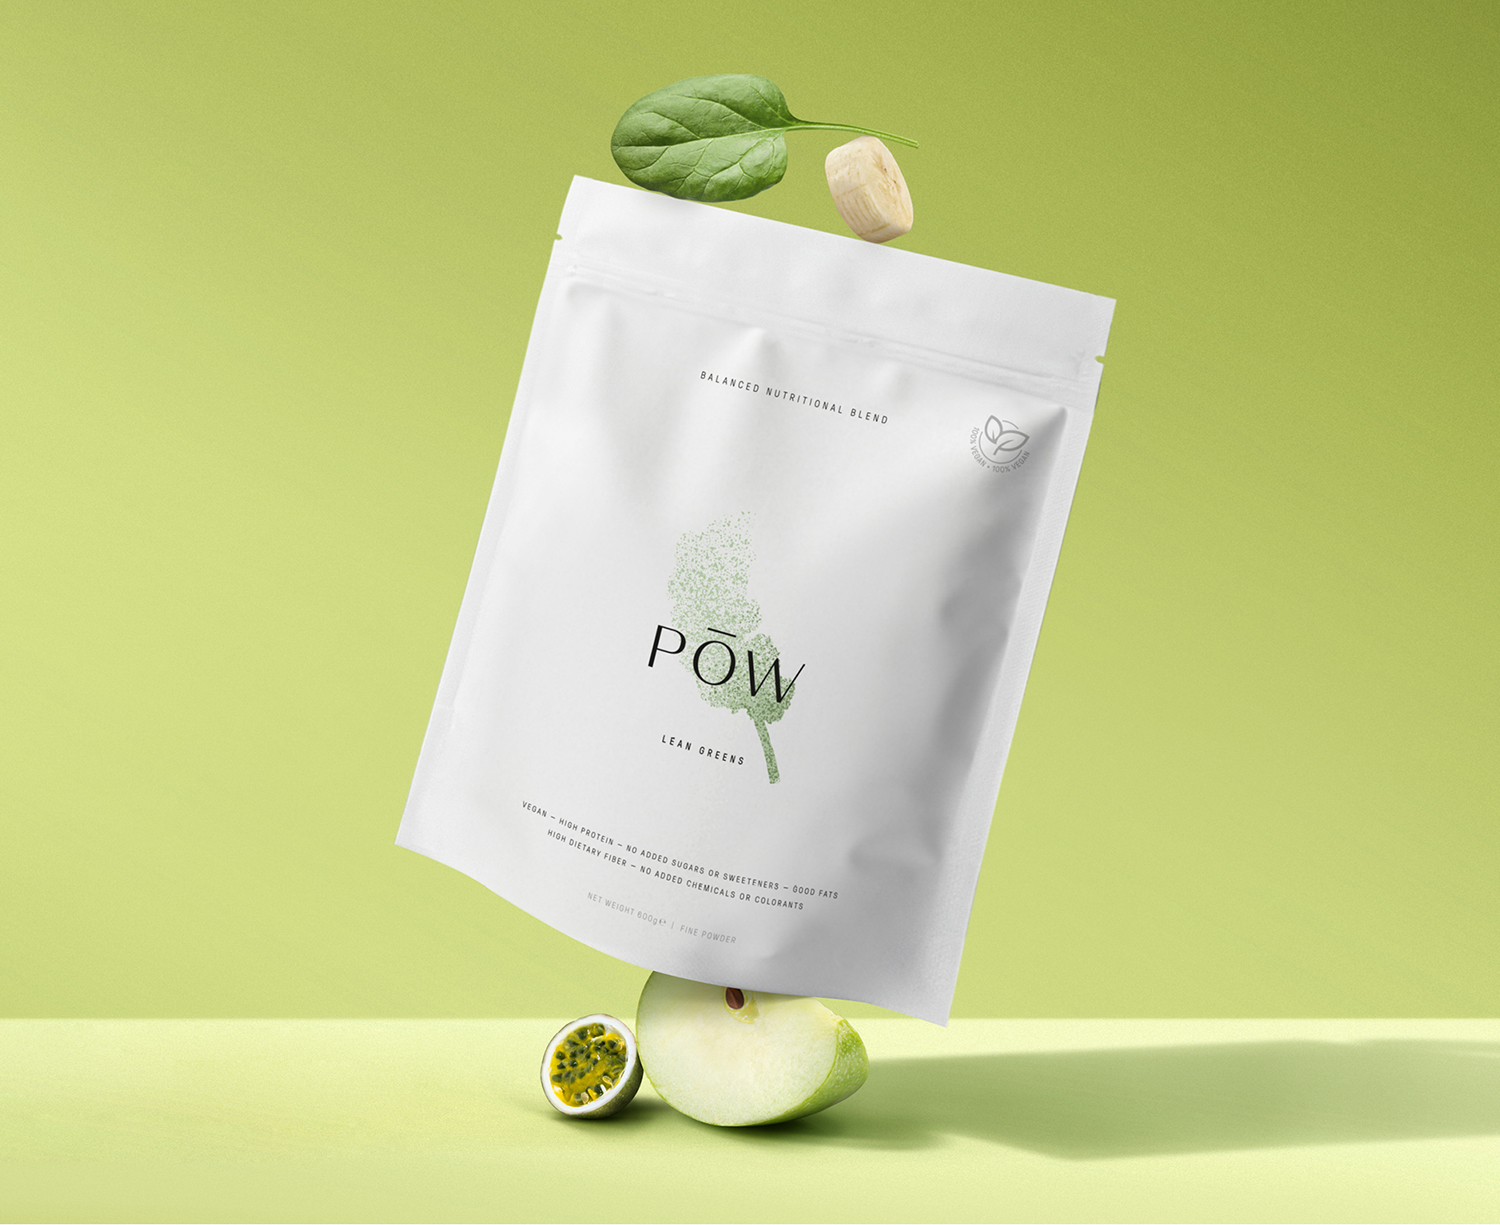 Pōw Nutritional Blends Brand and Packaging Design Created by Davy Dooms